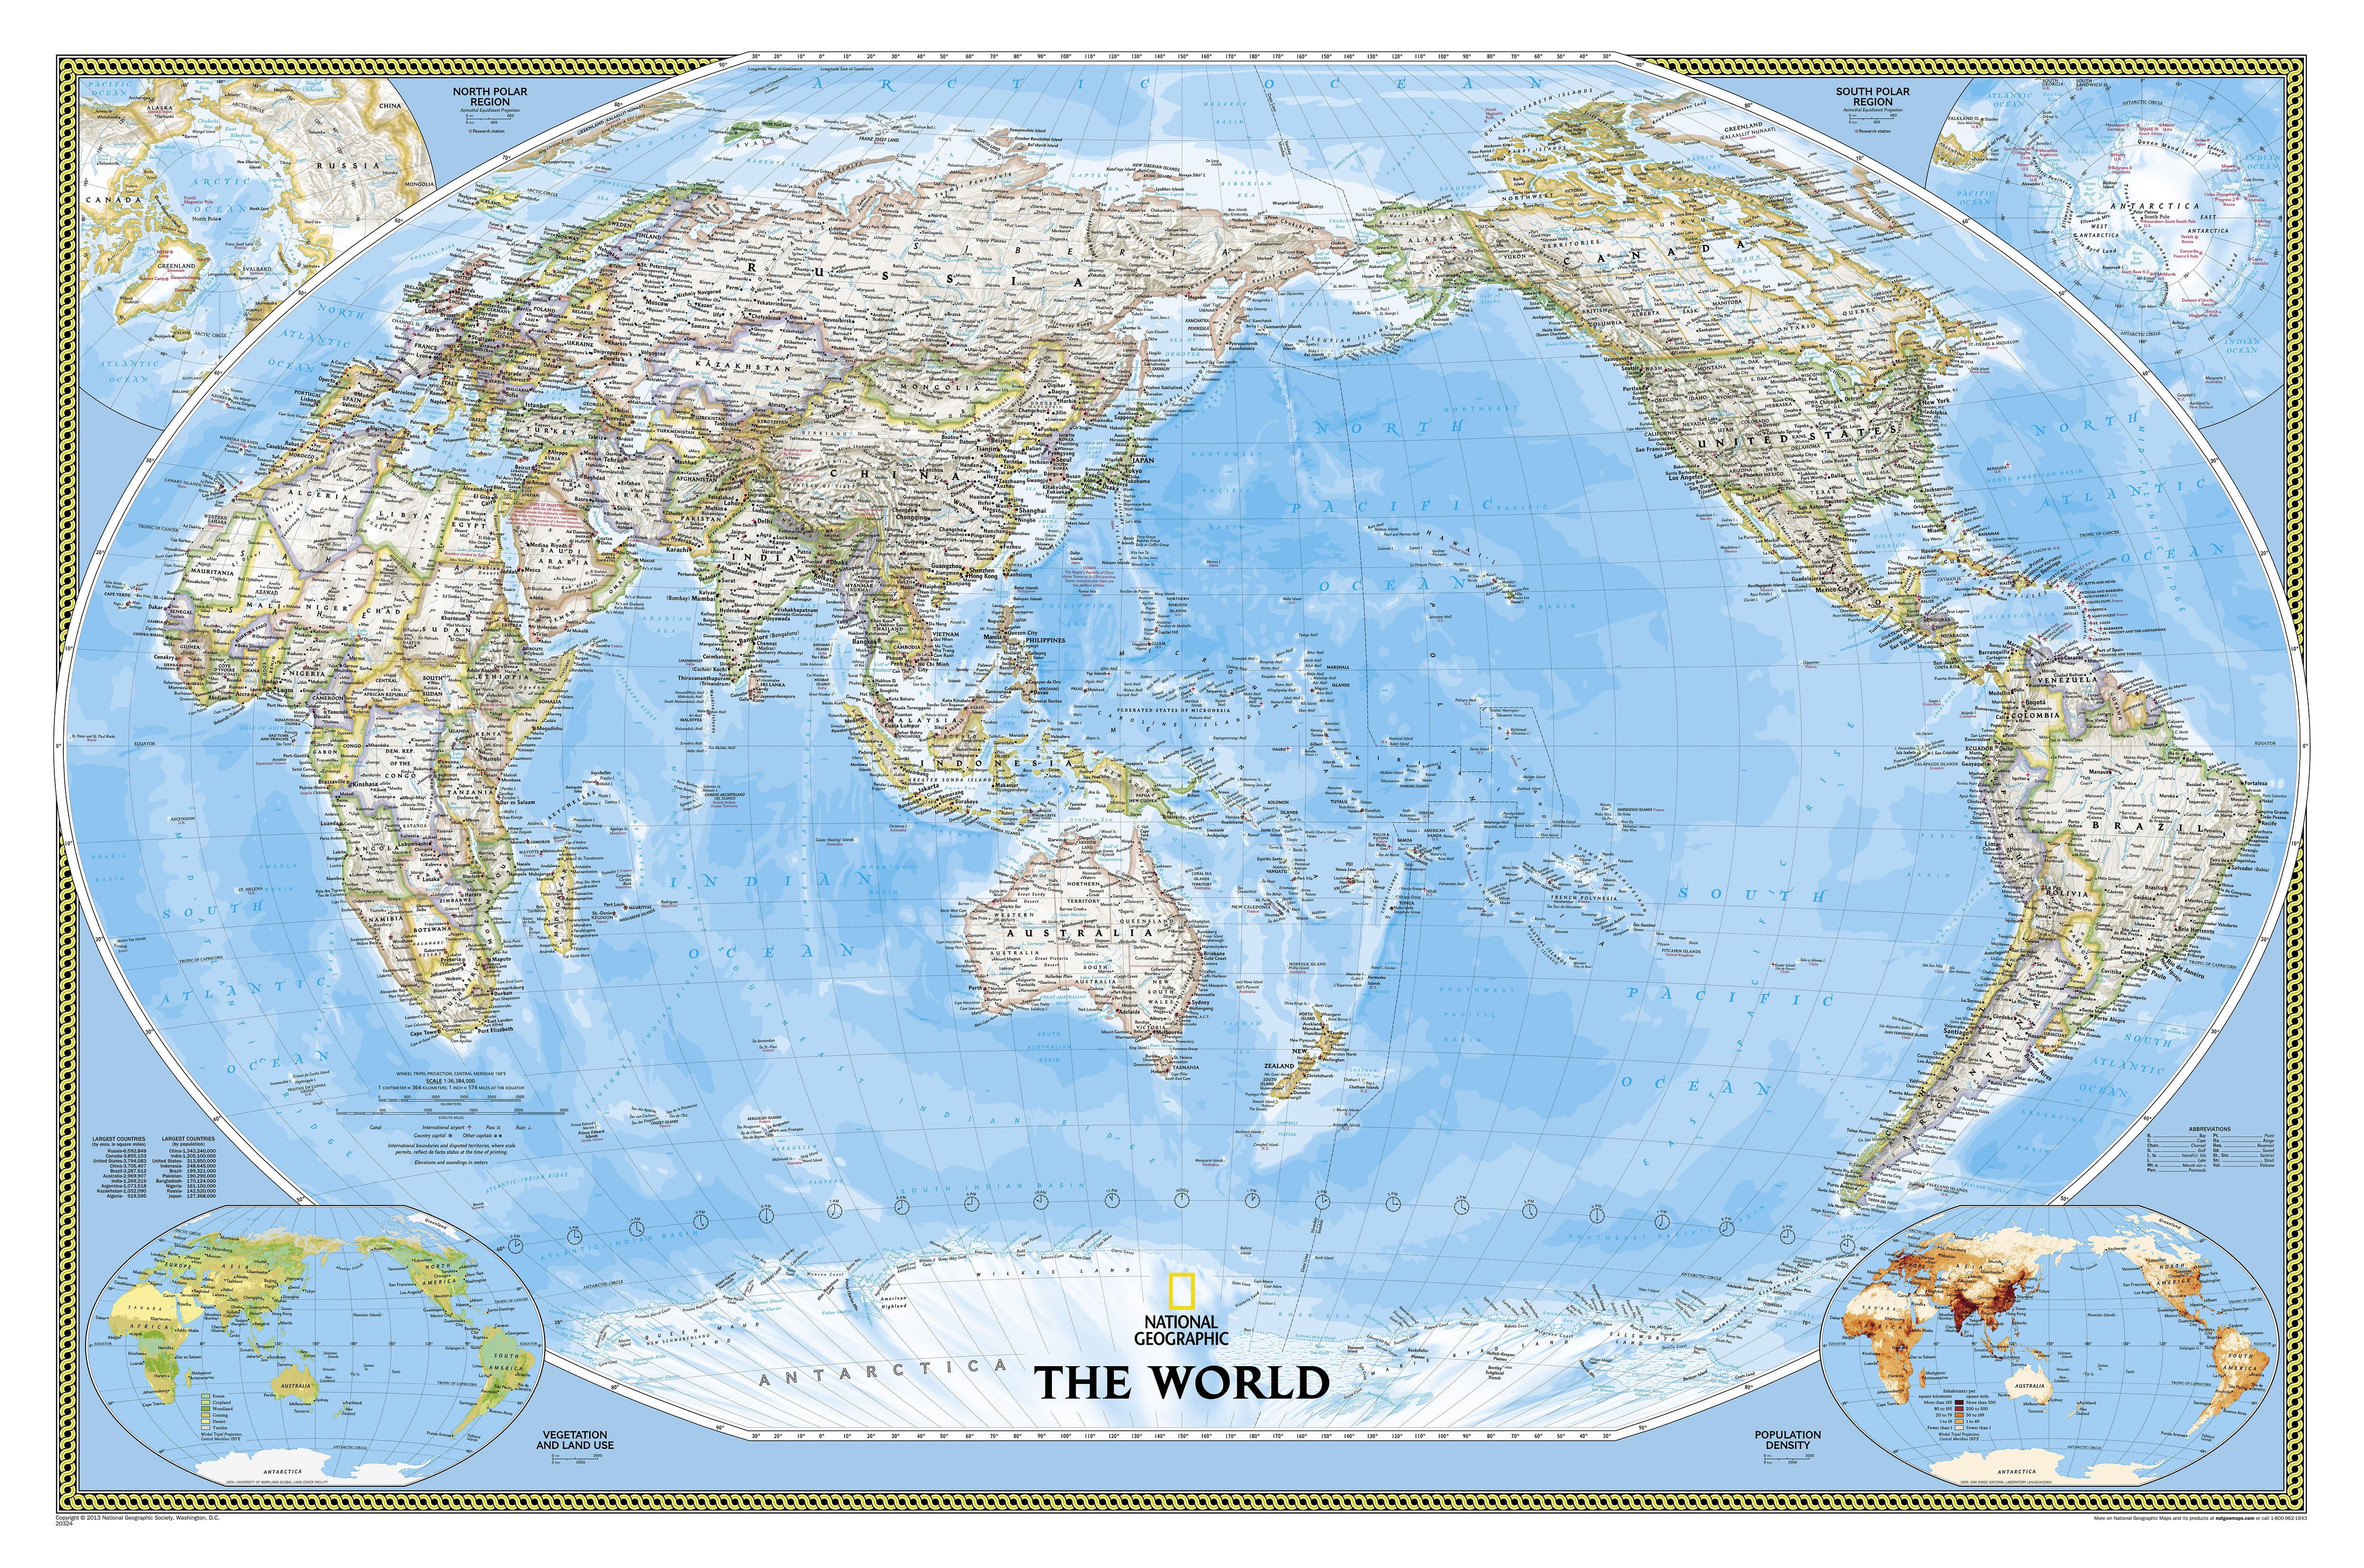 National Geographic Political World Map Pacific Rim - World decorator map